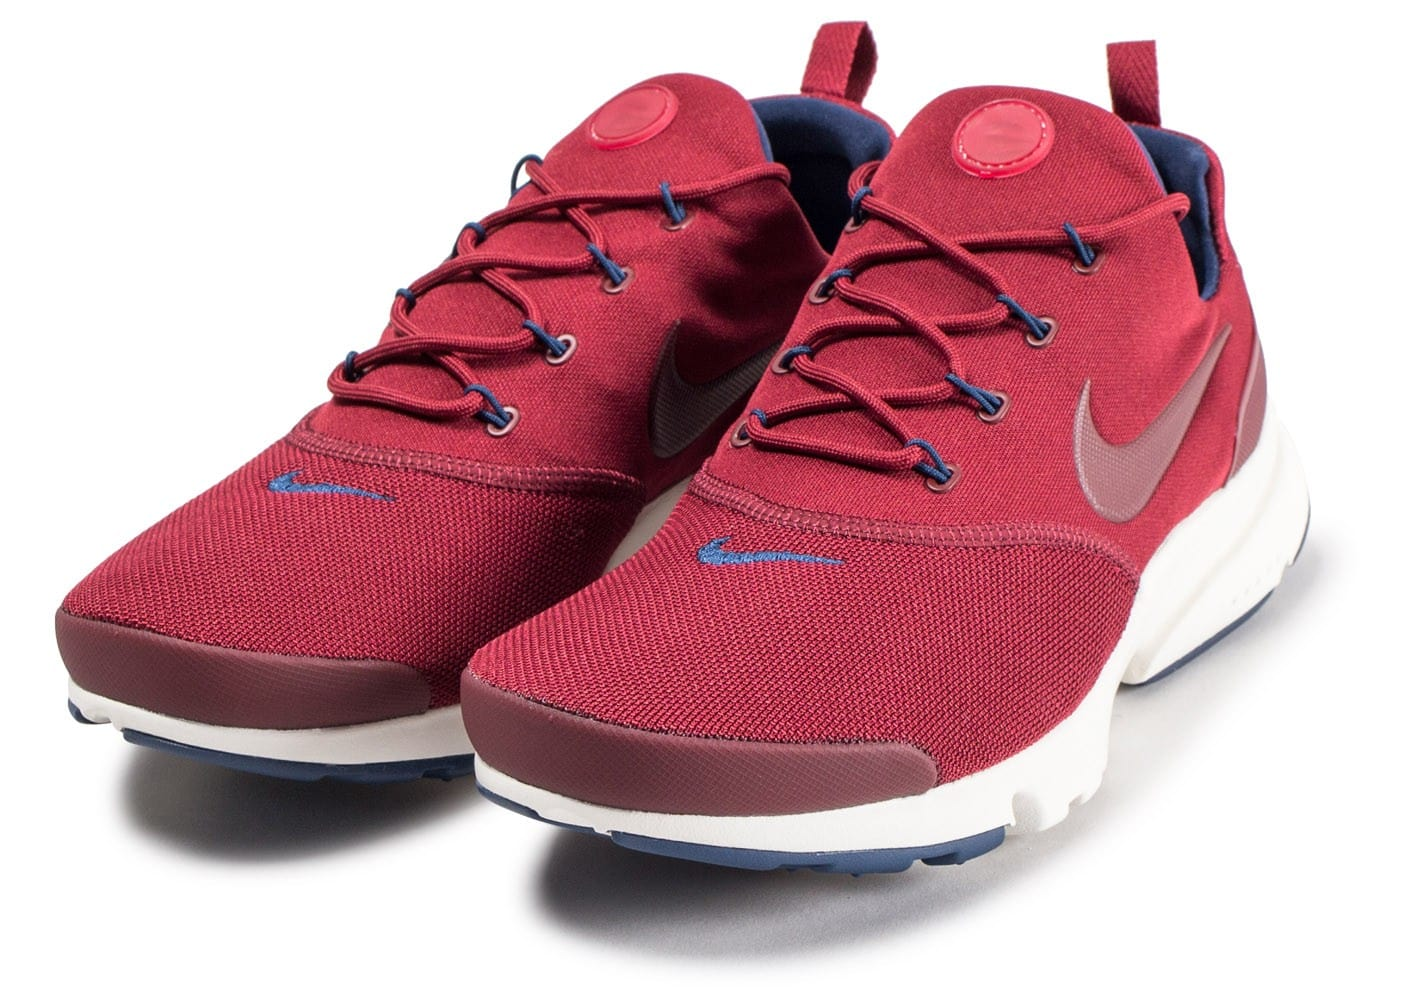 bas prix 74cf5 0b437 Nike Presto Fly rouge - Chaussures Baskets homme - Chausport